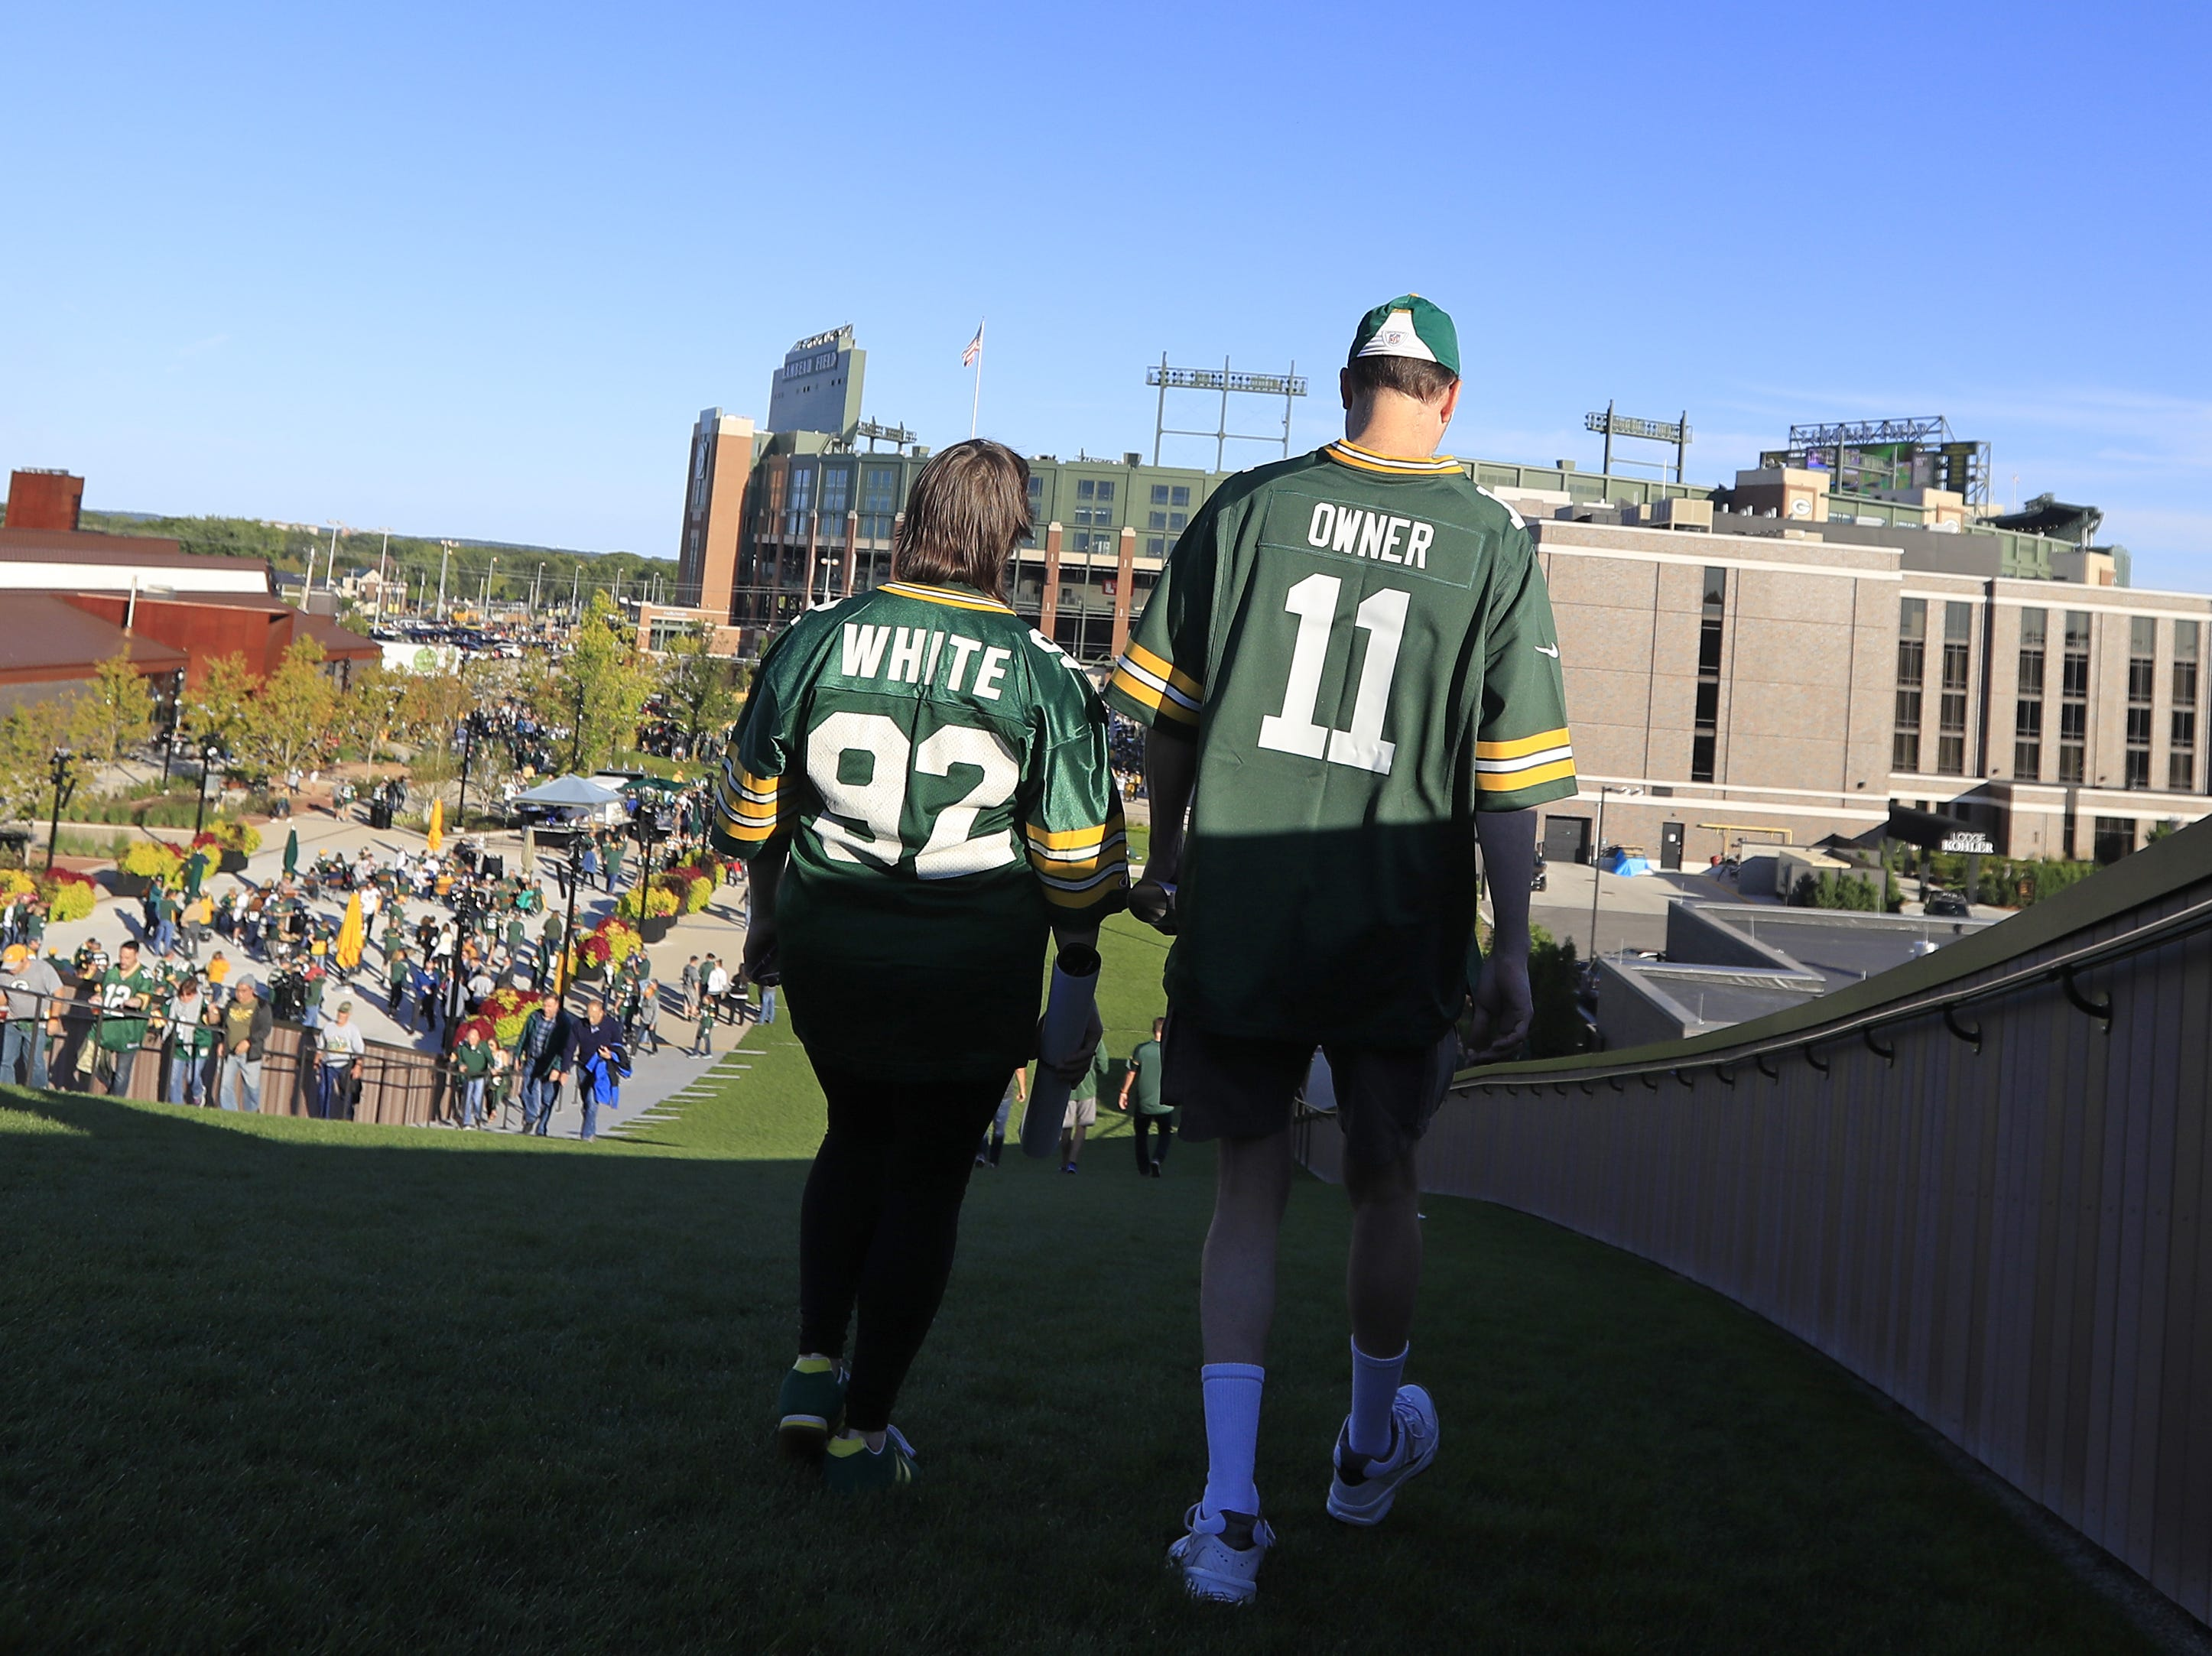 Fans check out the view in the Titletown district before the Packers vs Bears game at Lambeau Field on Sunday, September 9, 2018 in Green Bay, Wis.